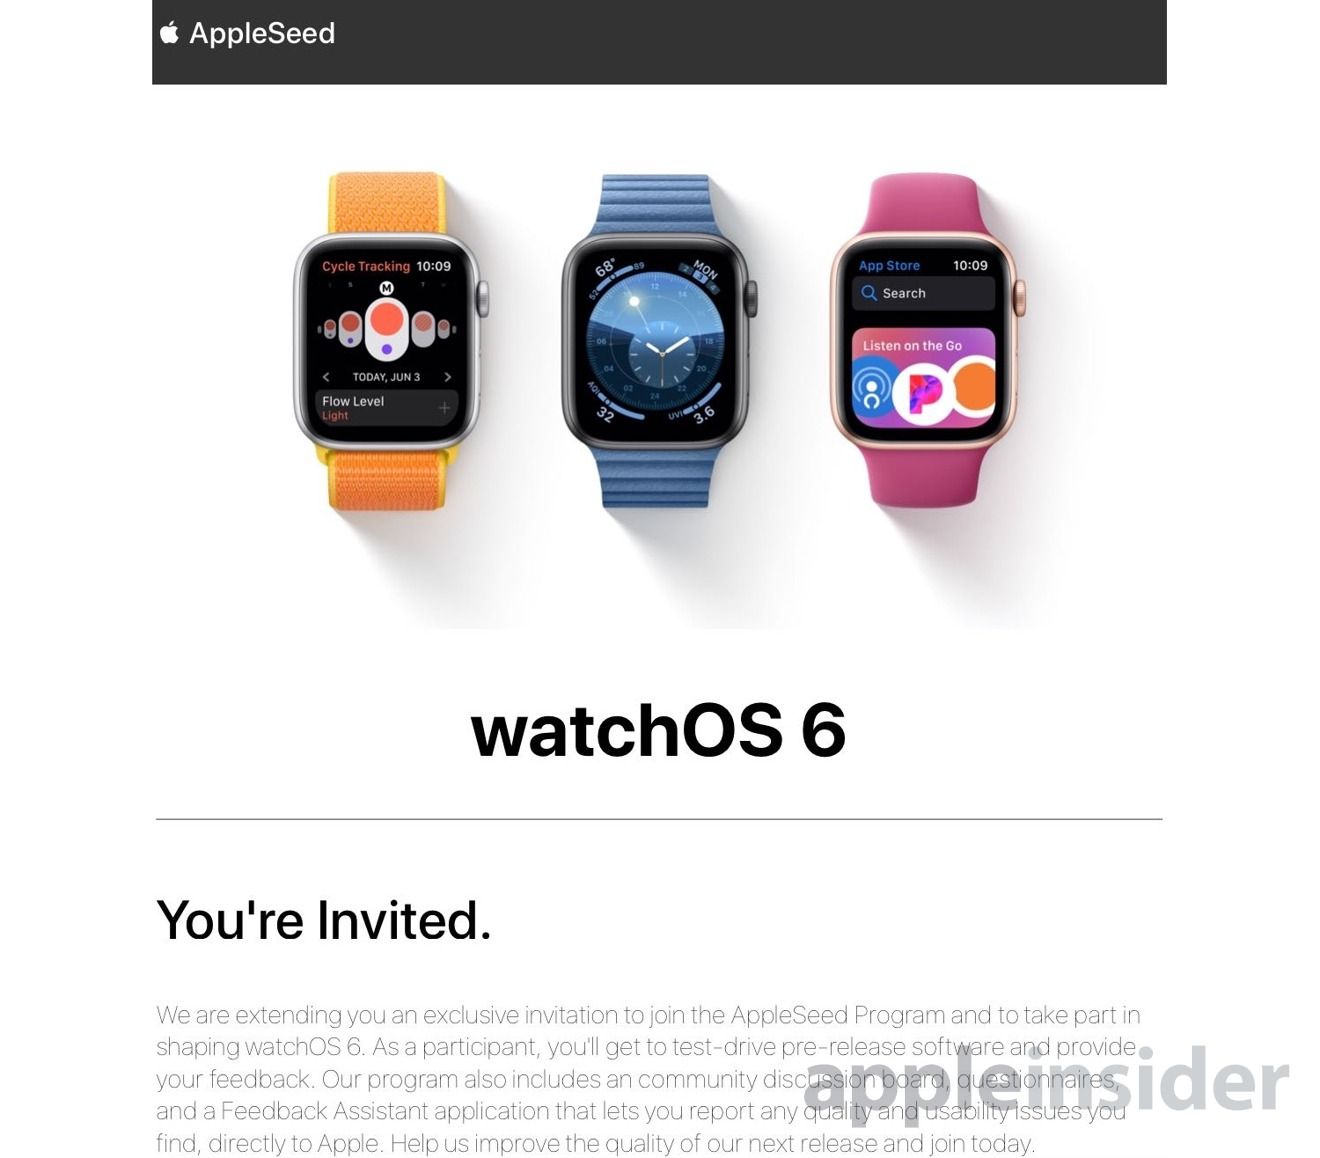 The email invitation sent to potential participants for the AppleSeed program